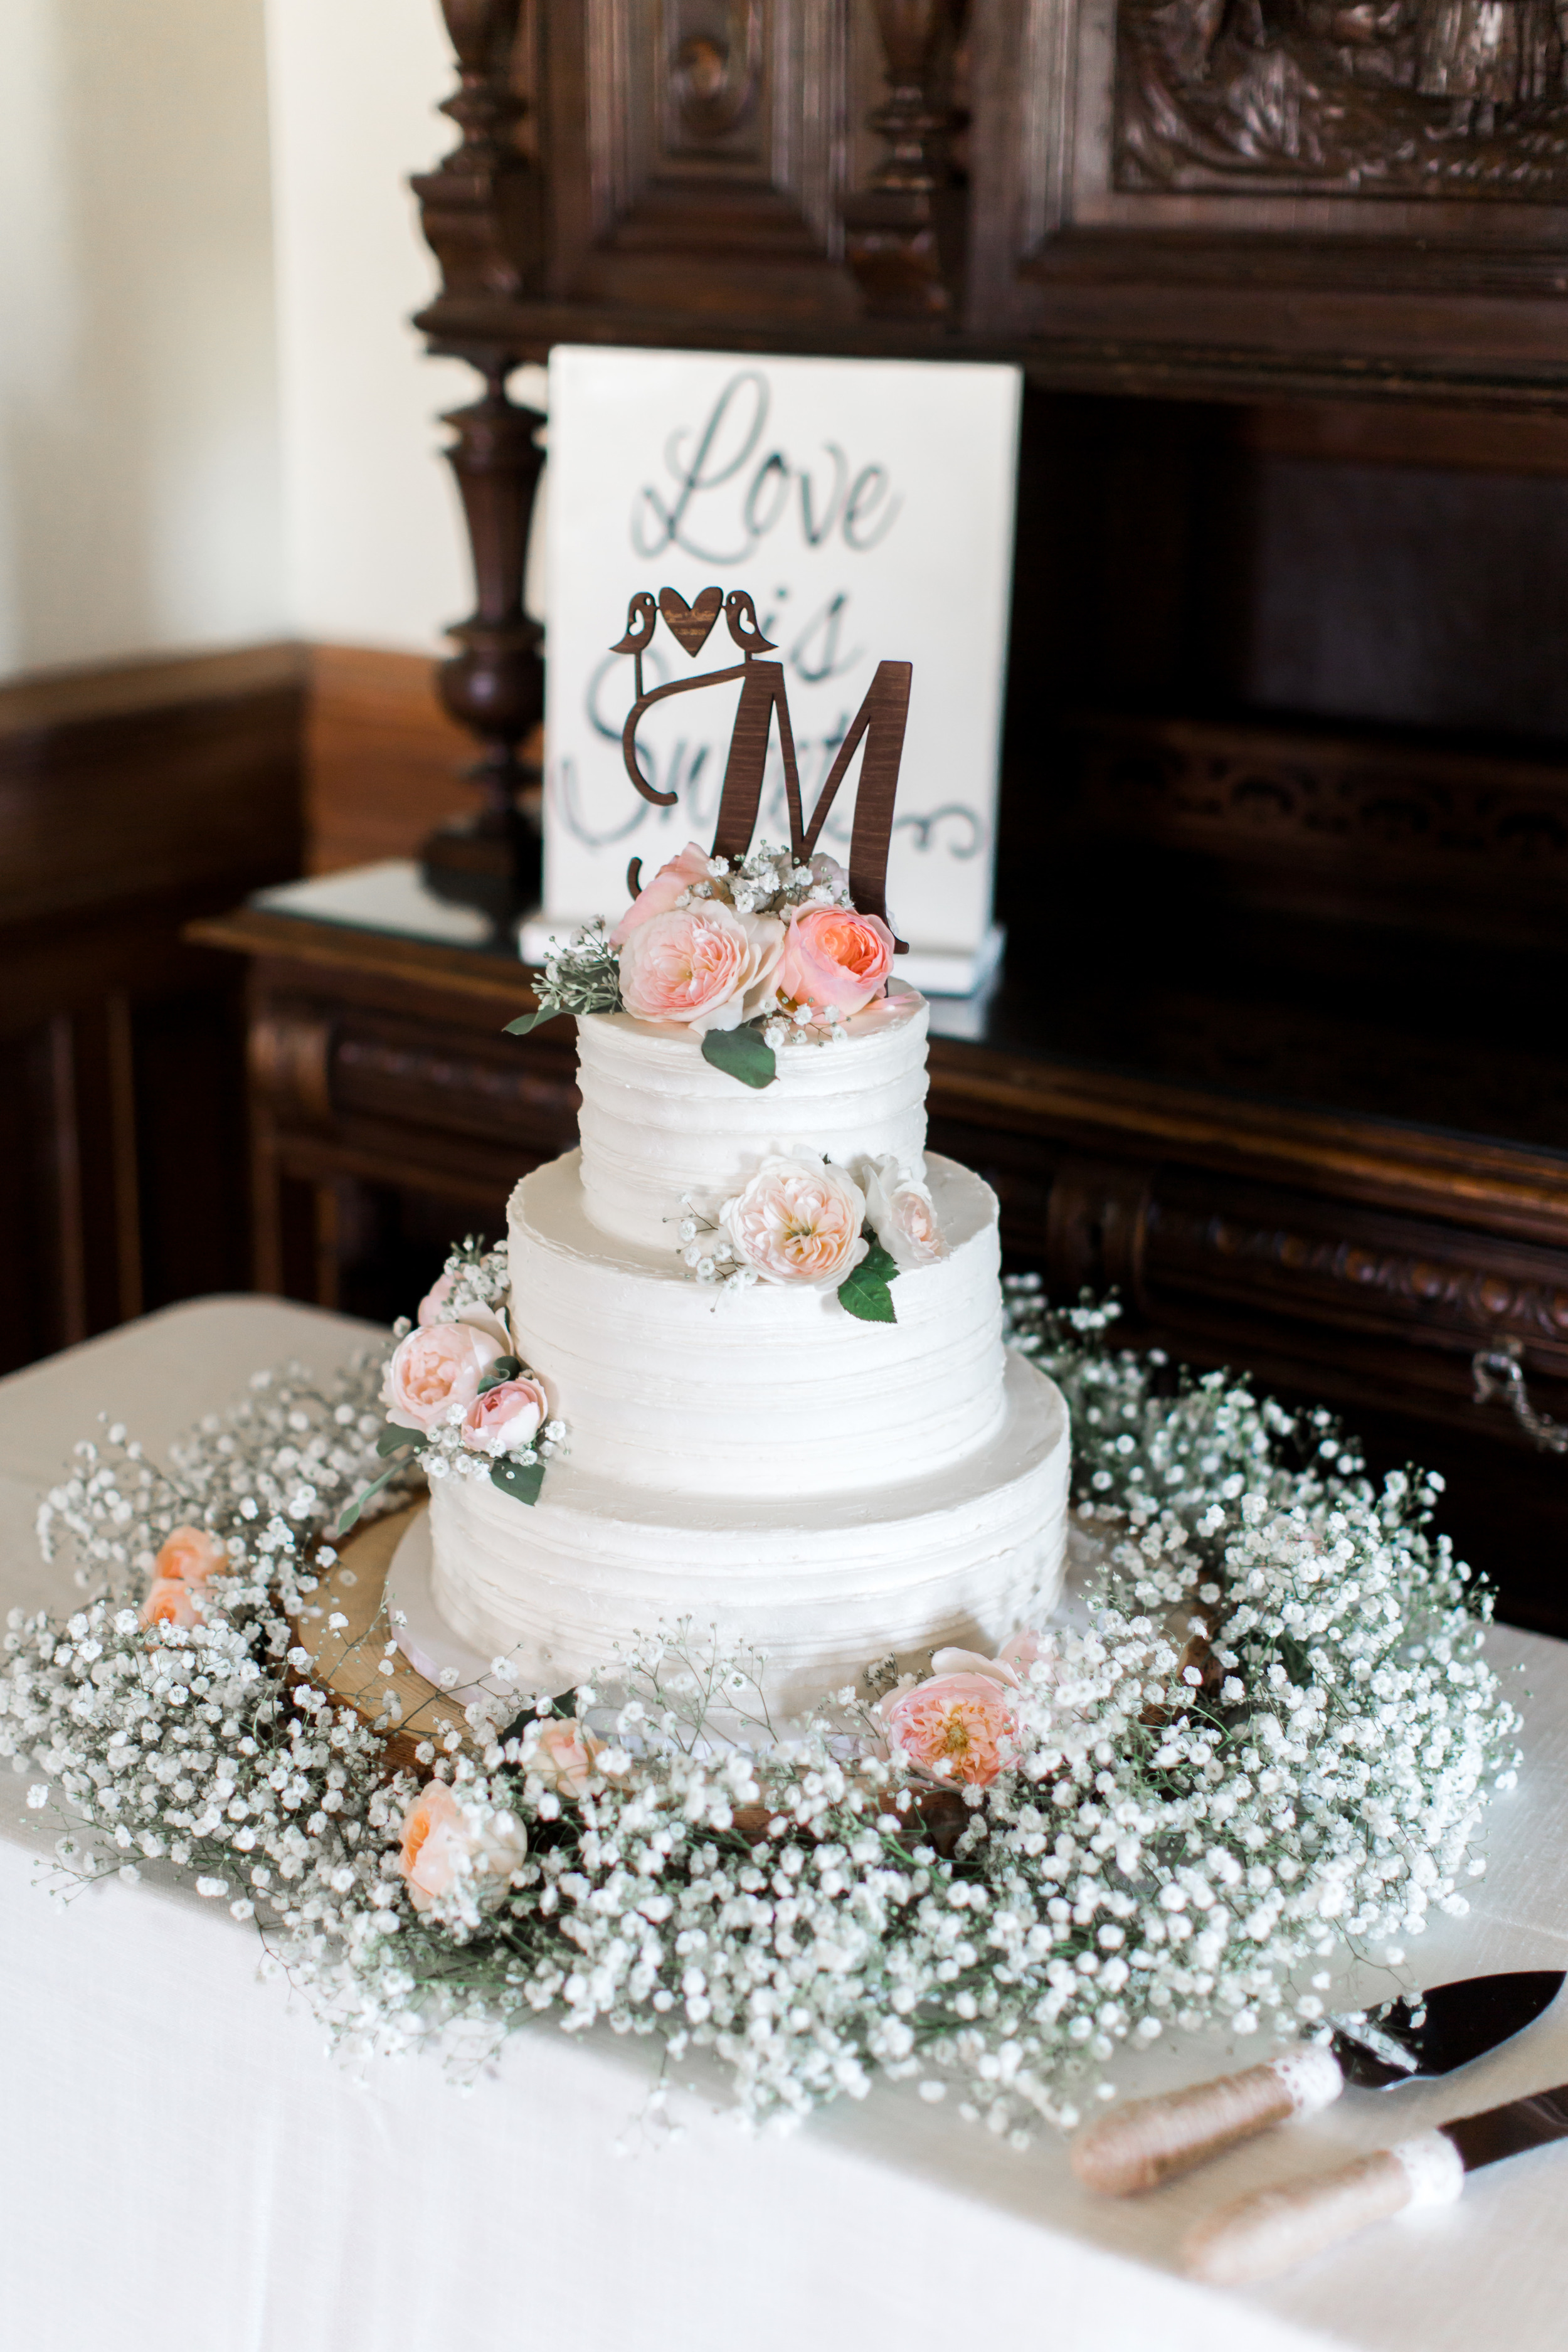 southern-inspired-wedding-at-ravenswood-historic-site-5748.jpg